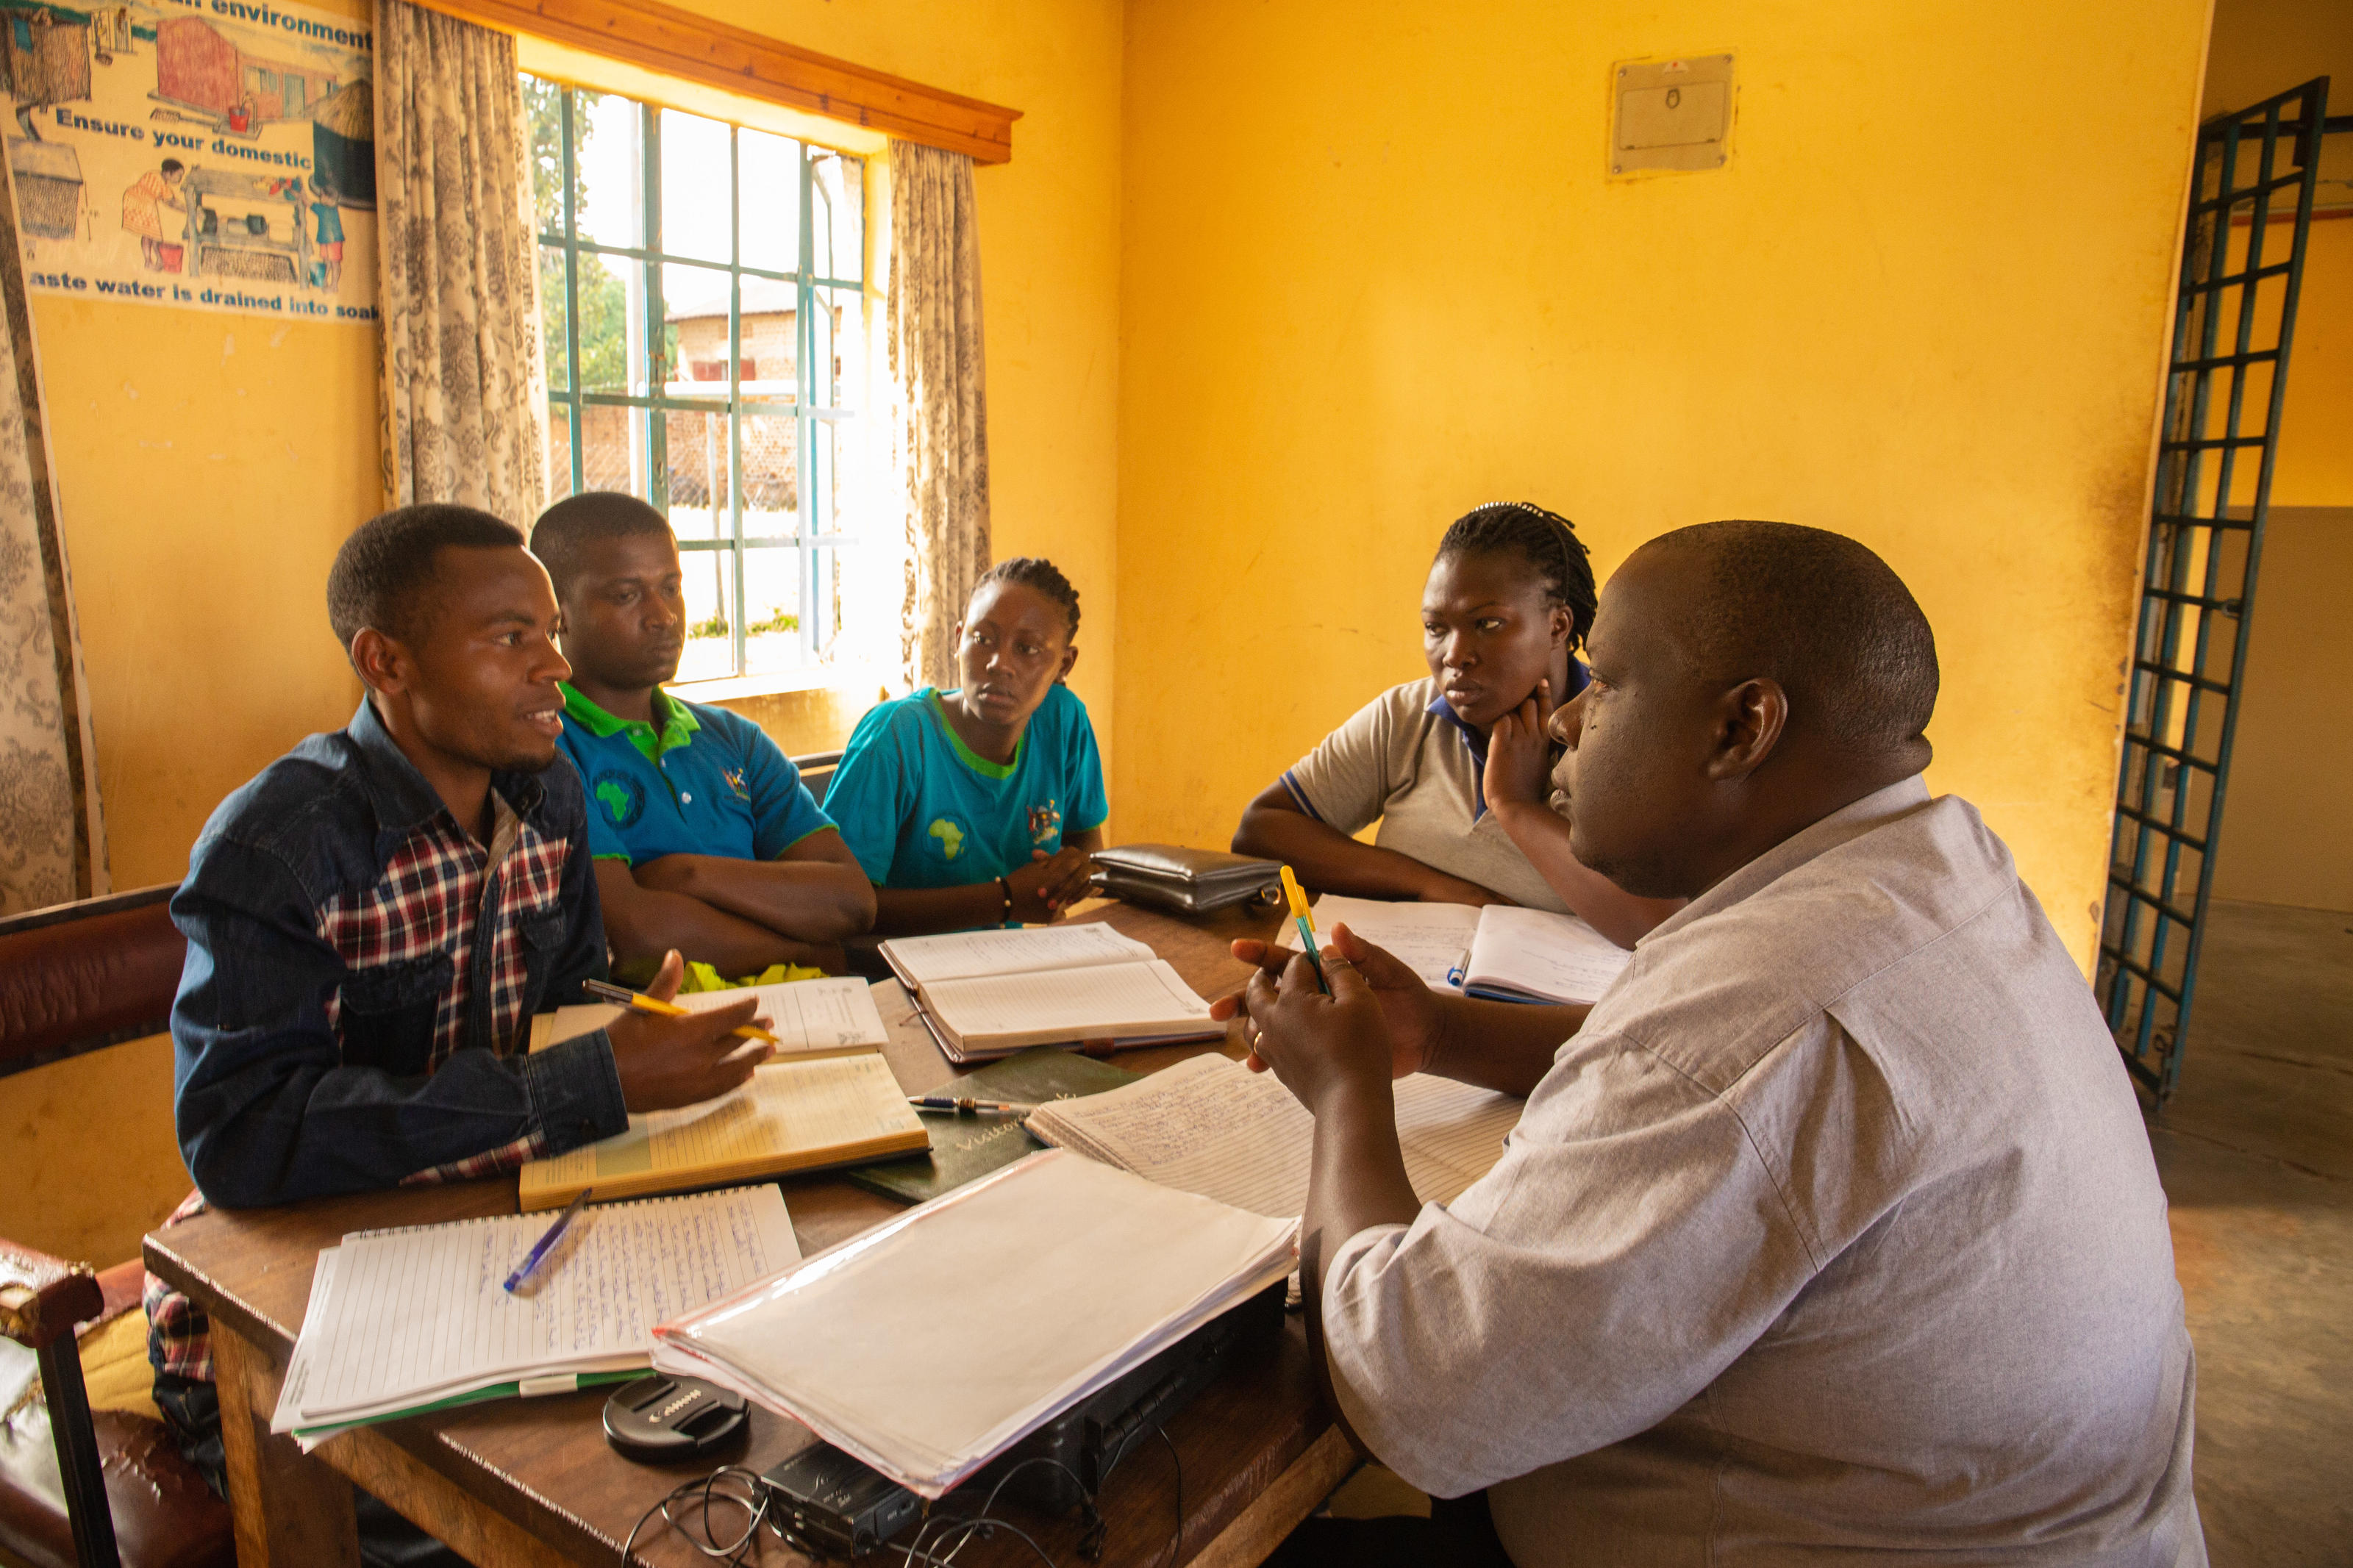 Right: Nkundizana Julius, 25, Team Leader, Busolwe Piped Water Supply System, meeting with Eastern Umbrella for Water and Sanitation and WaterAid staff , Busolwe Town Council, Butaleja District, Uganda, November 2018.